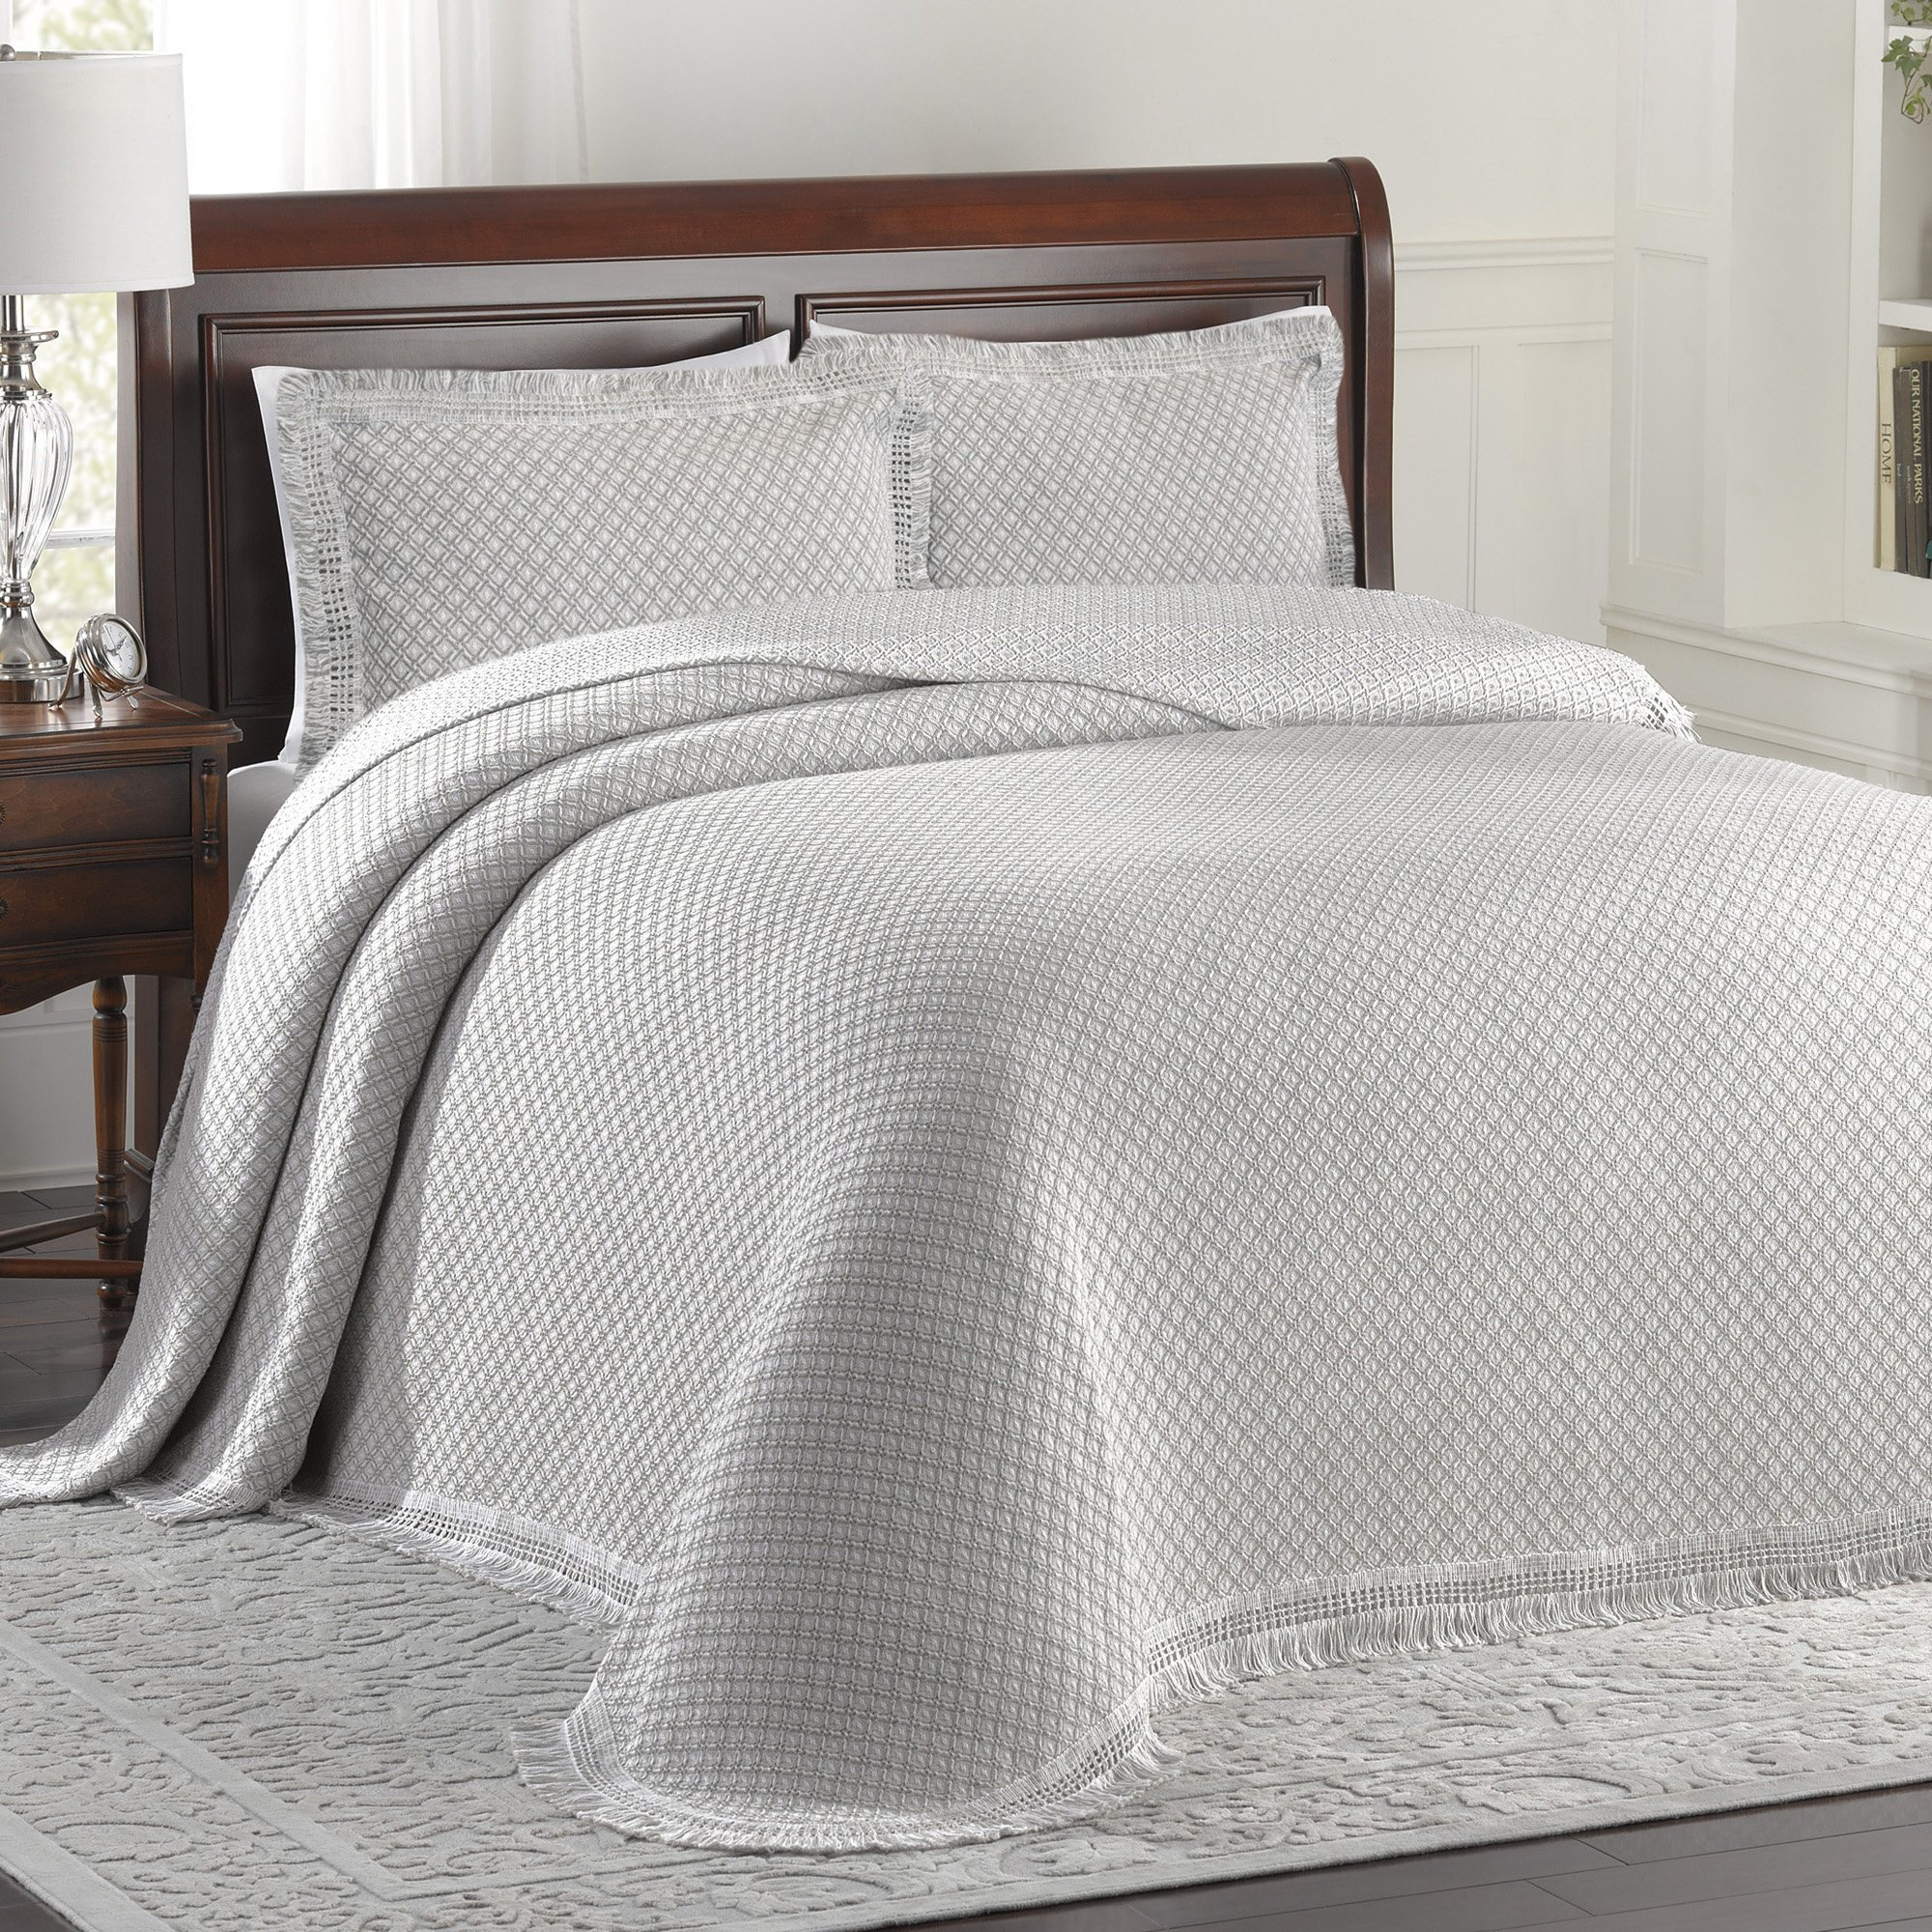 LaMont Home Woven Jacquard Collection – Cotton Blend Bedspread